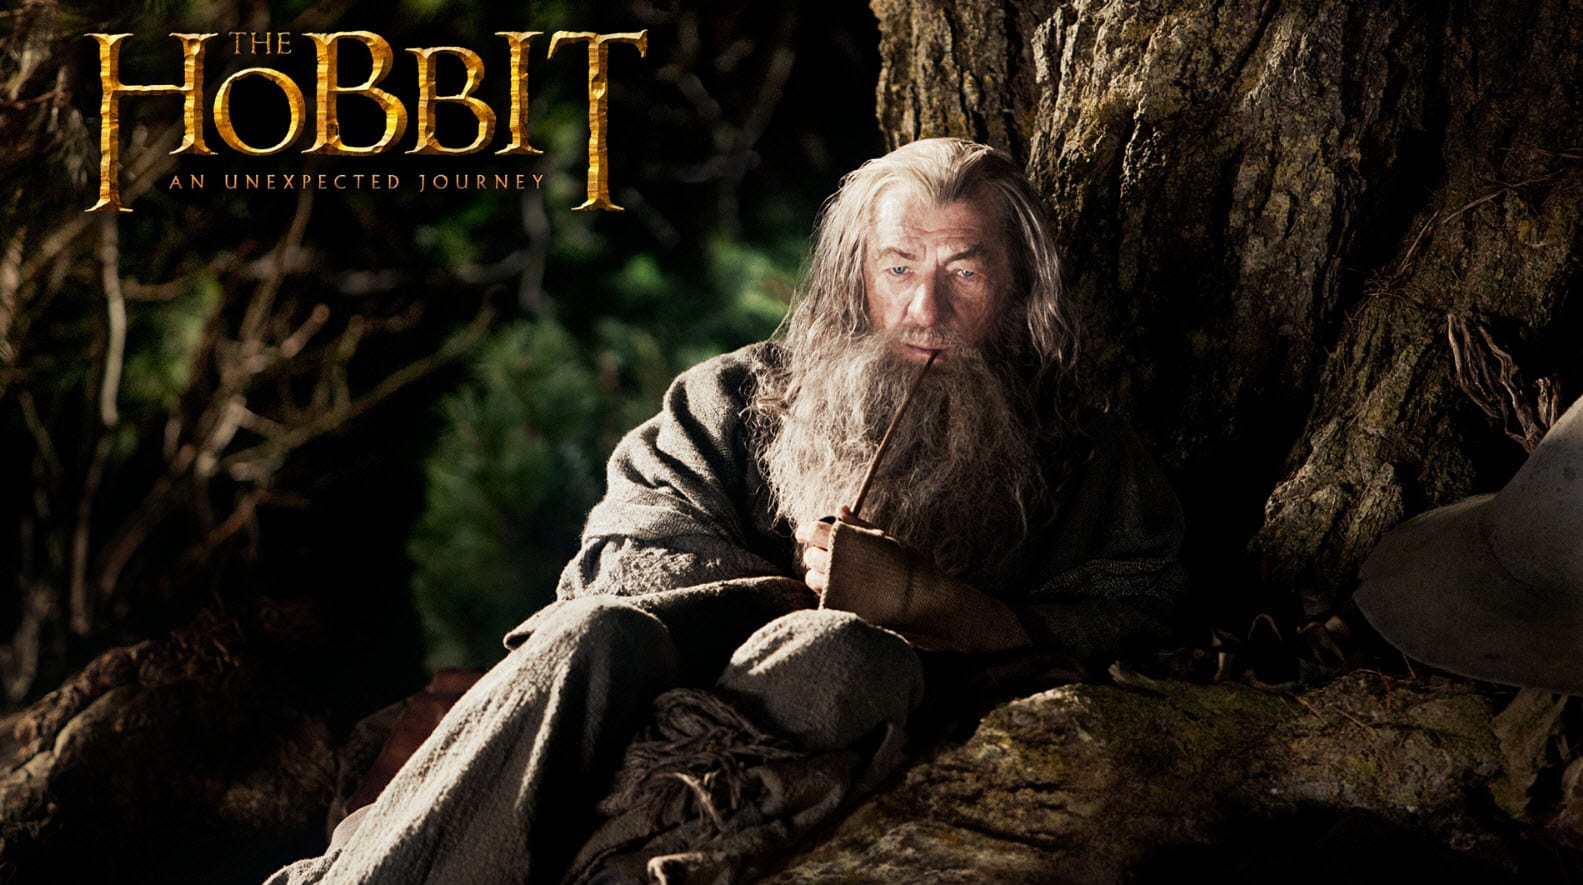 The Hobbit Theme for Windows 7